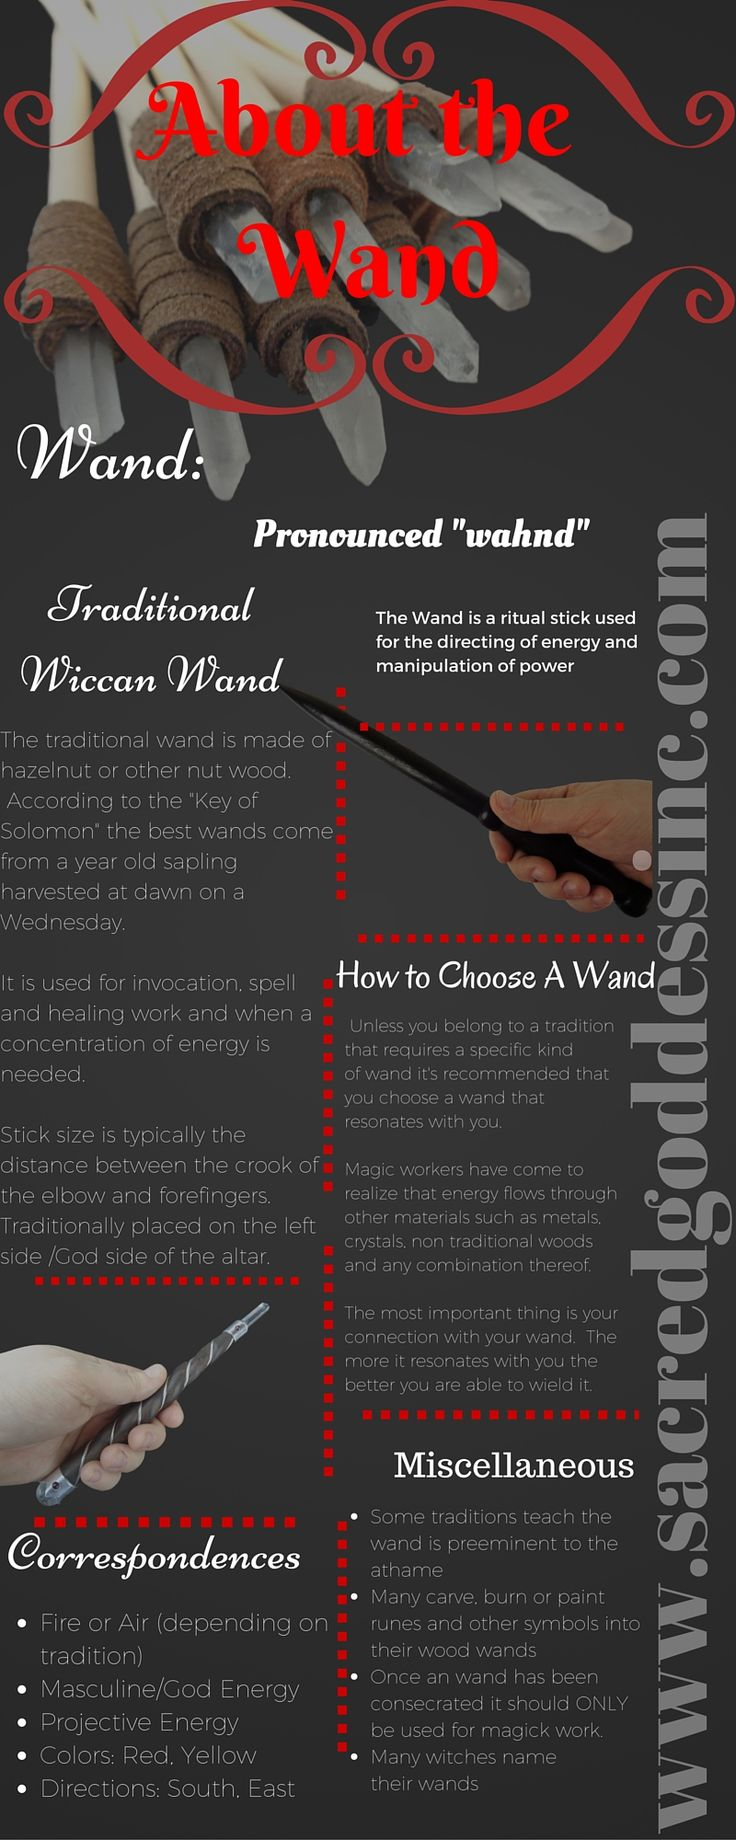 Wicca for Beginners - Magic Magick Wand Correspondences & Other Info. Follow us for more great infographs. Click the pic to visit our website.